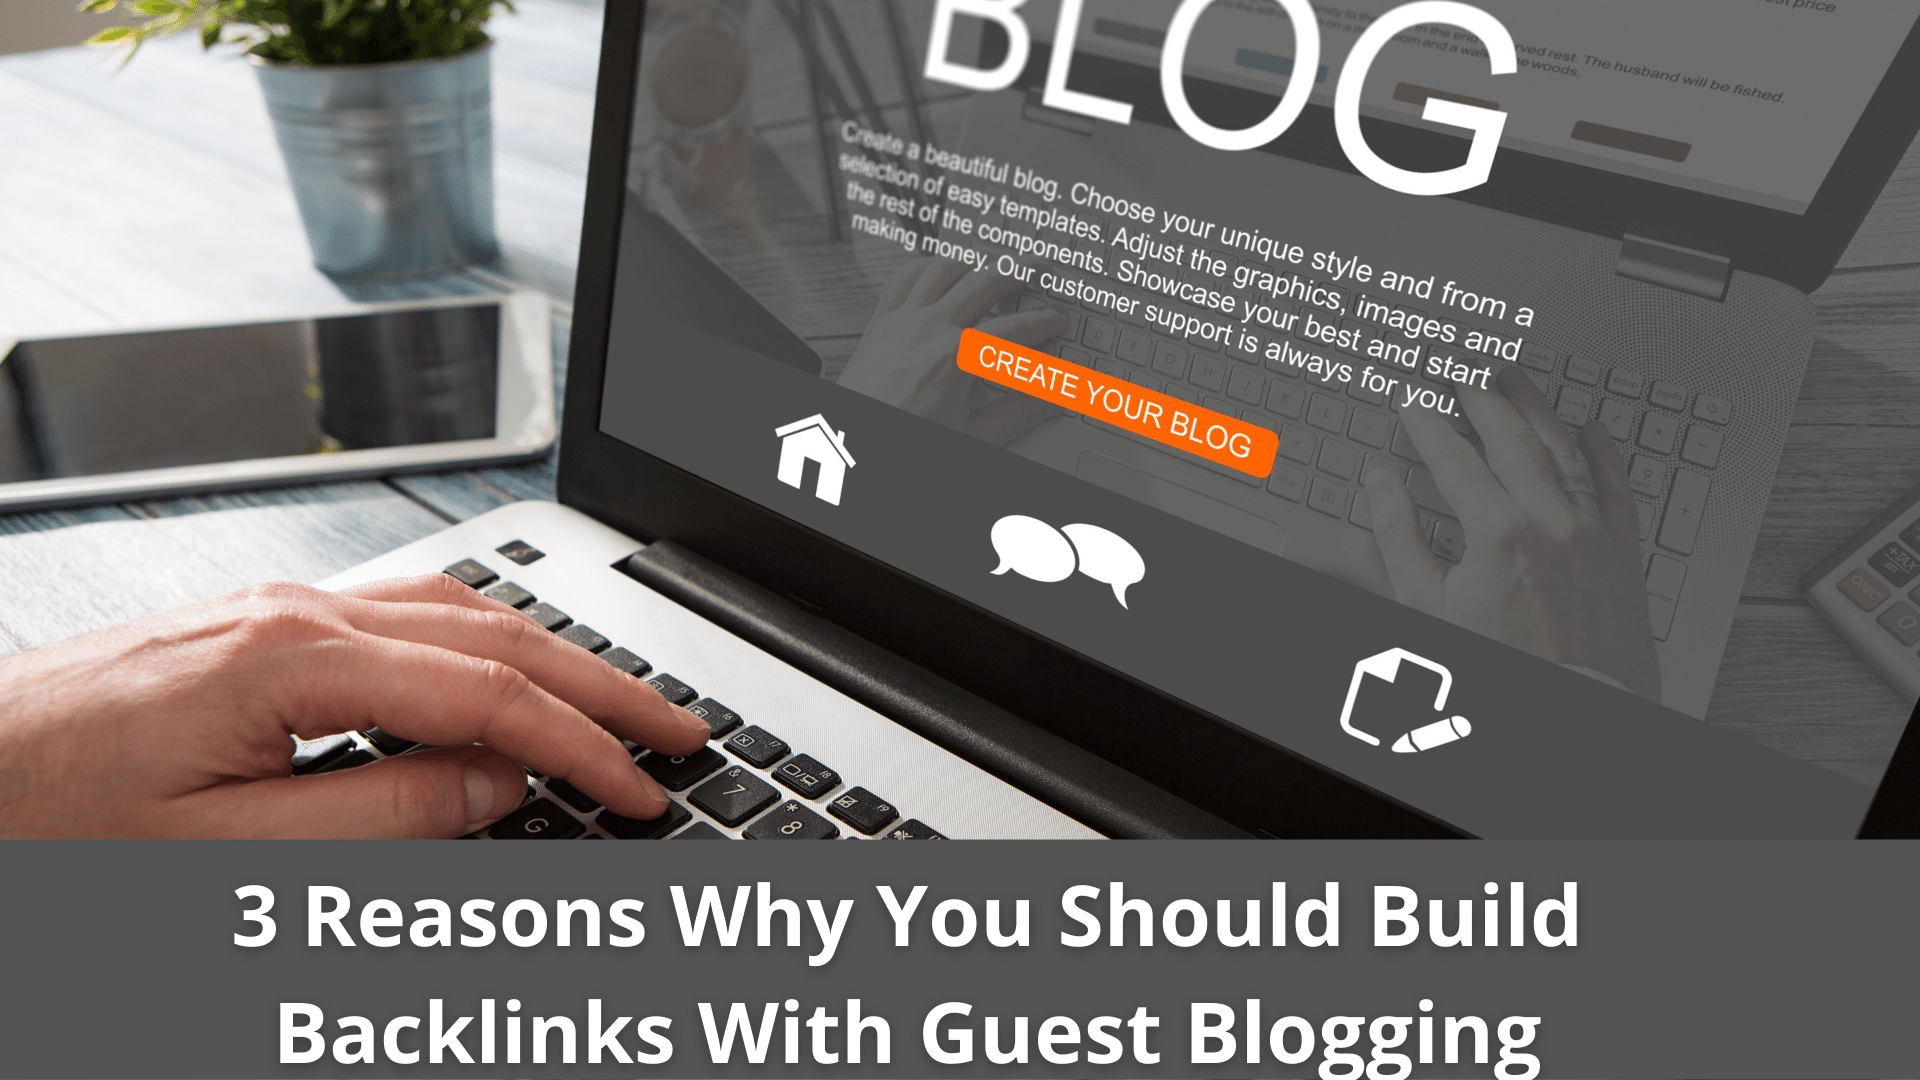 3 Reasons Why You Should Build Backlinks With Guest Blogging 39